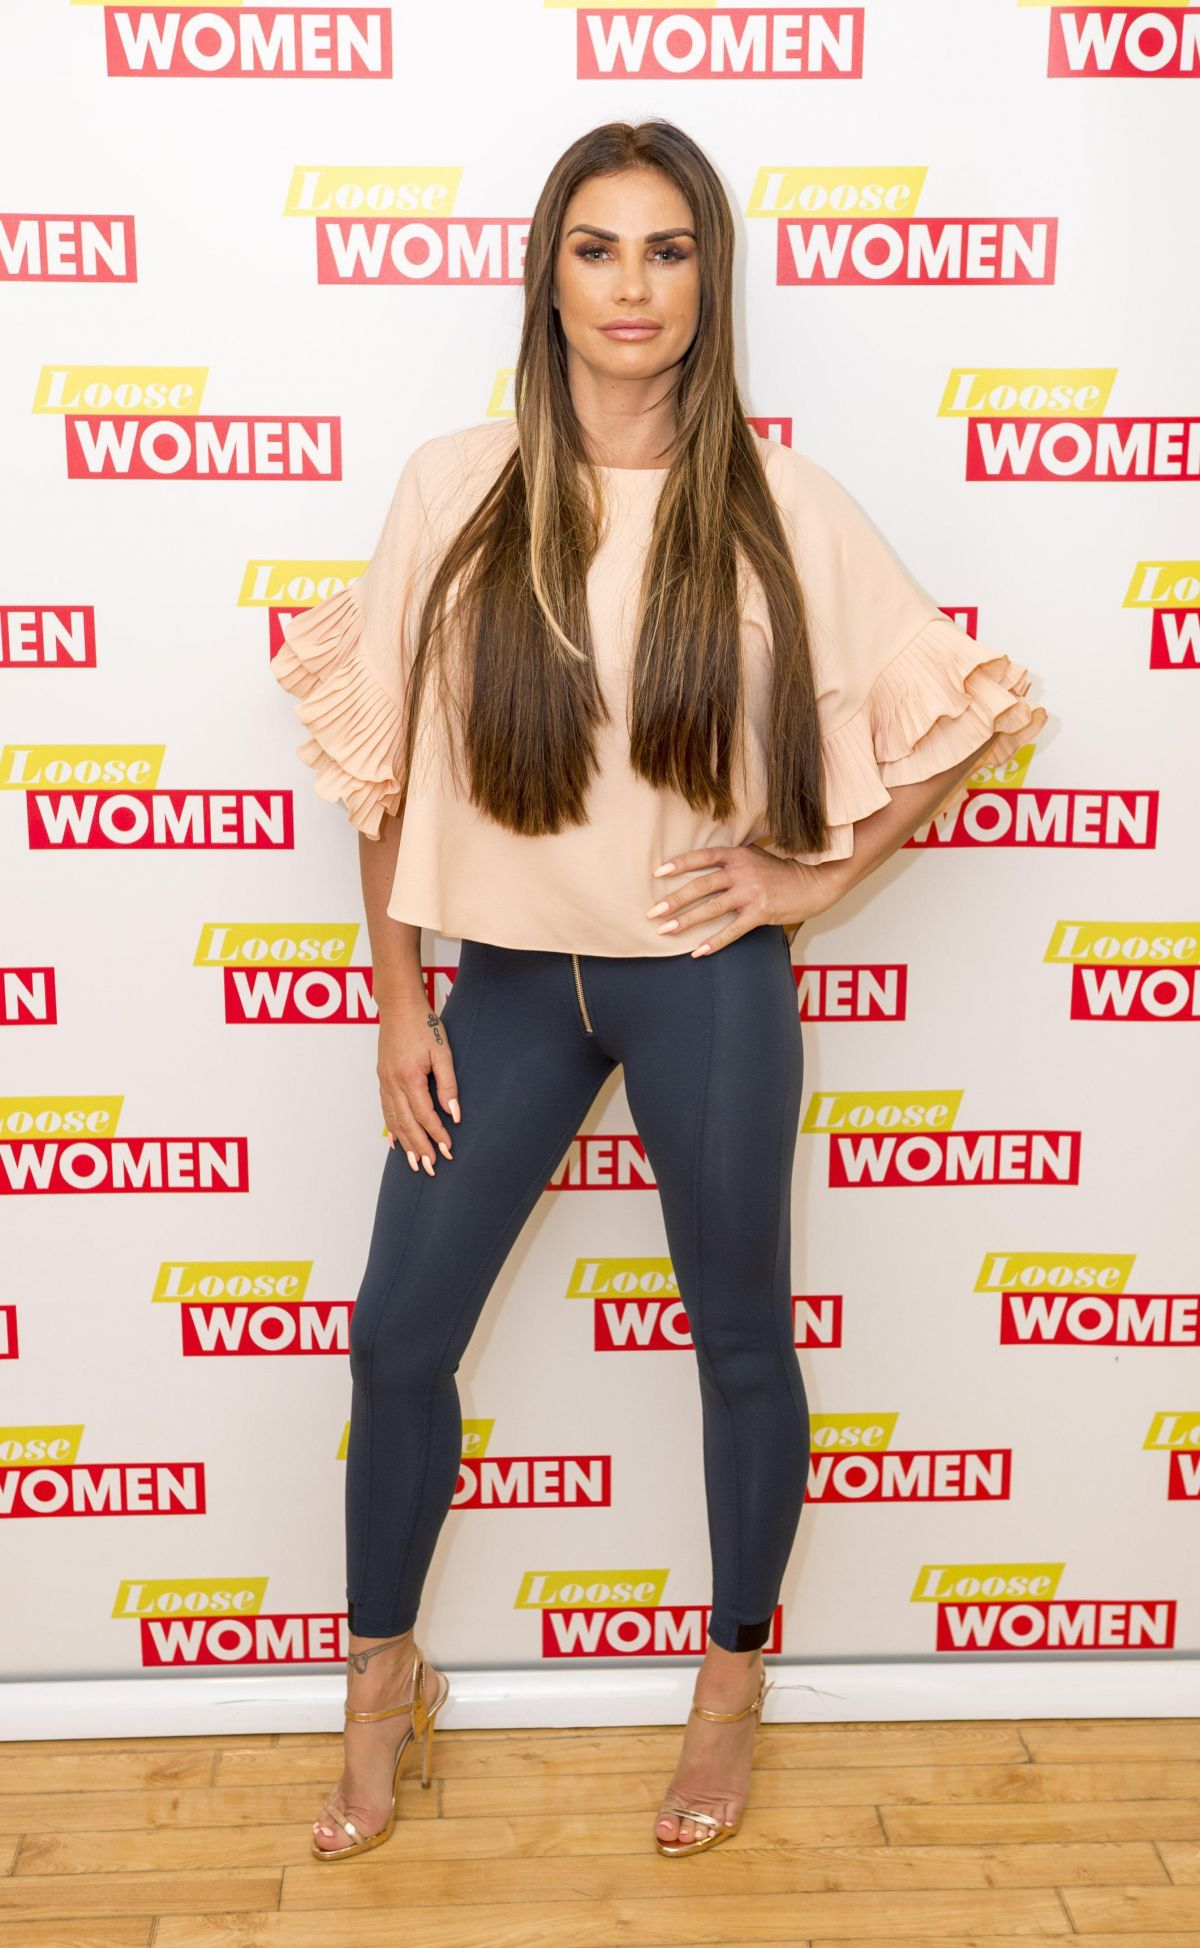 KATIE PRICE at Loose Women TV Show in London 06/15/2017